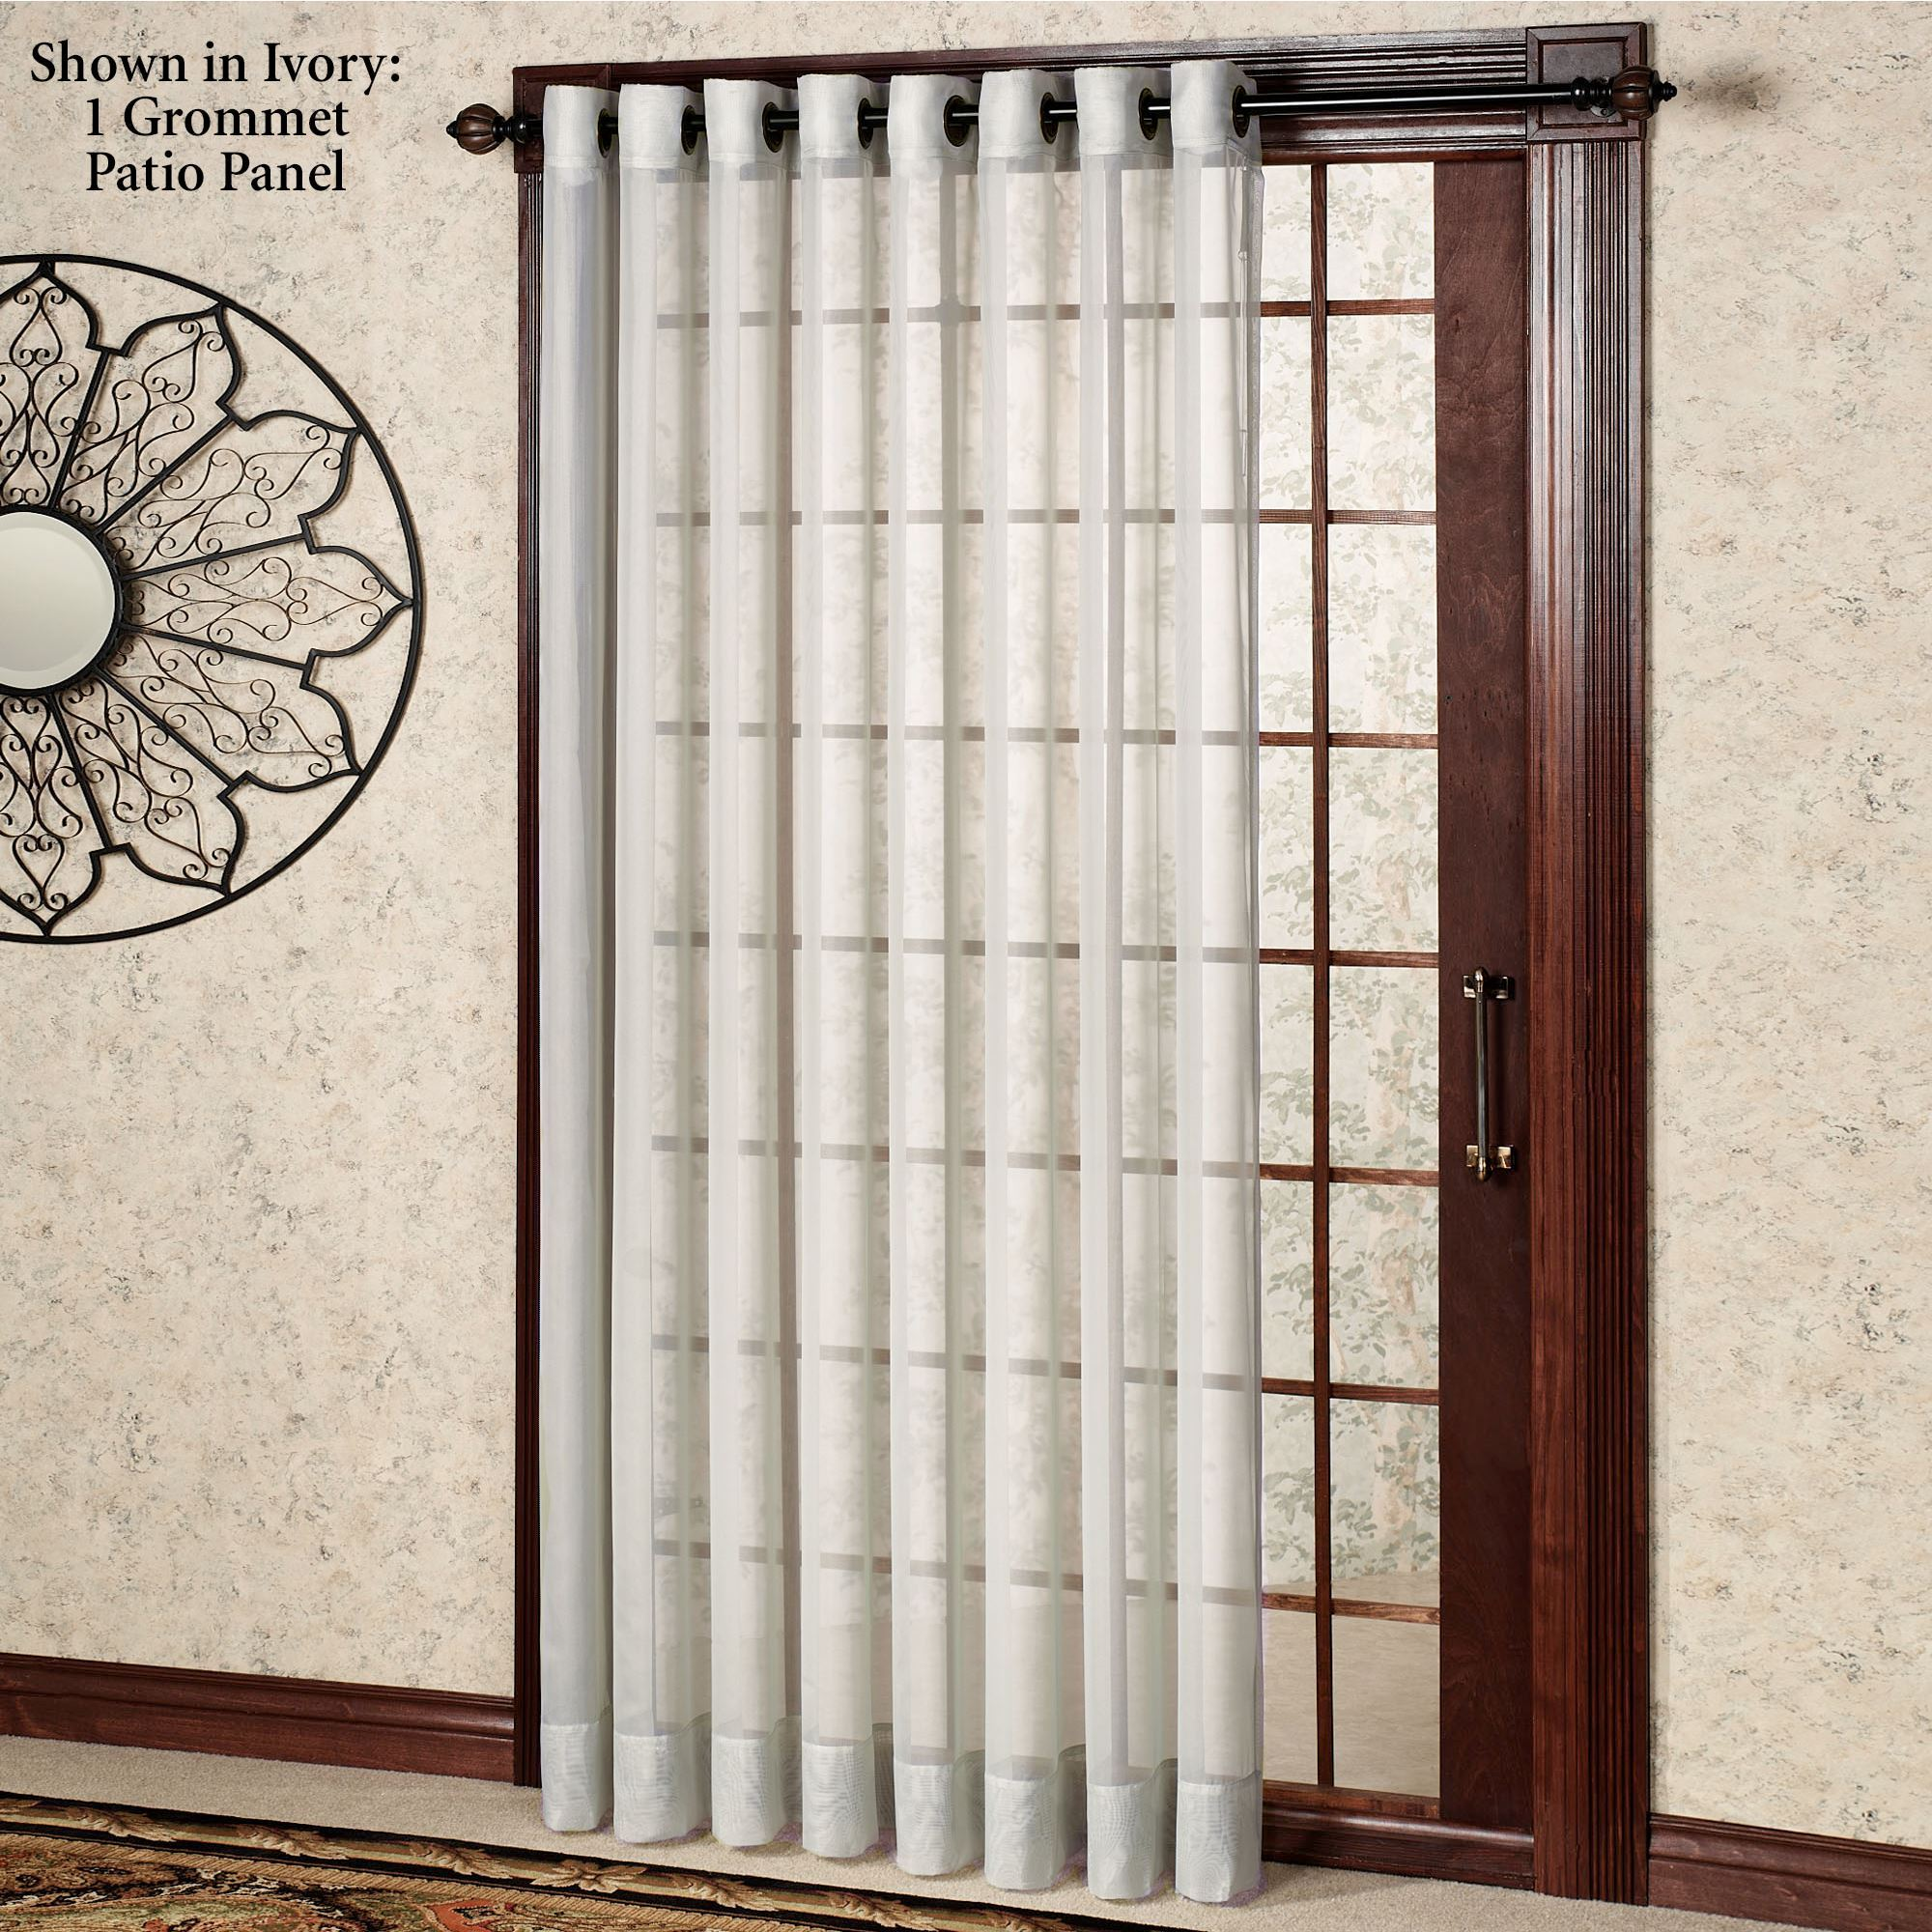 Oyster Bay Sheer Grommet Patio Panel